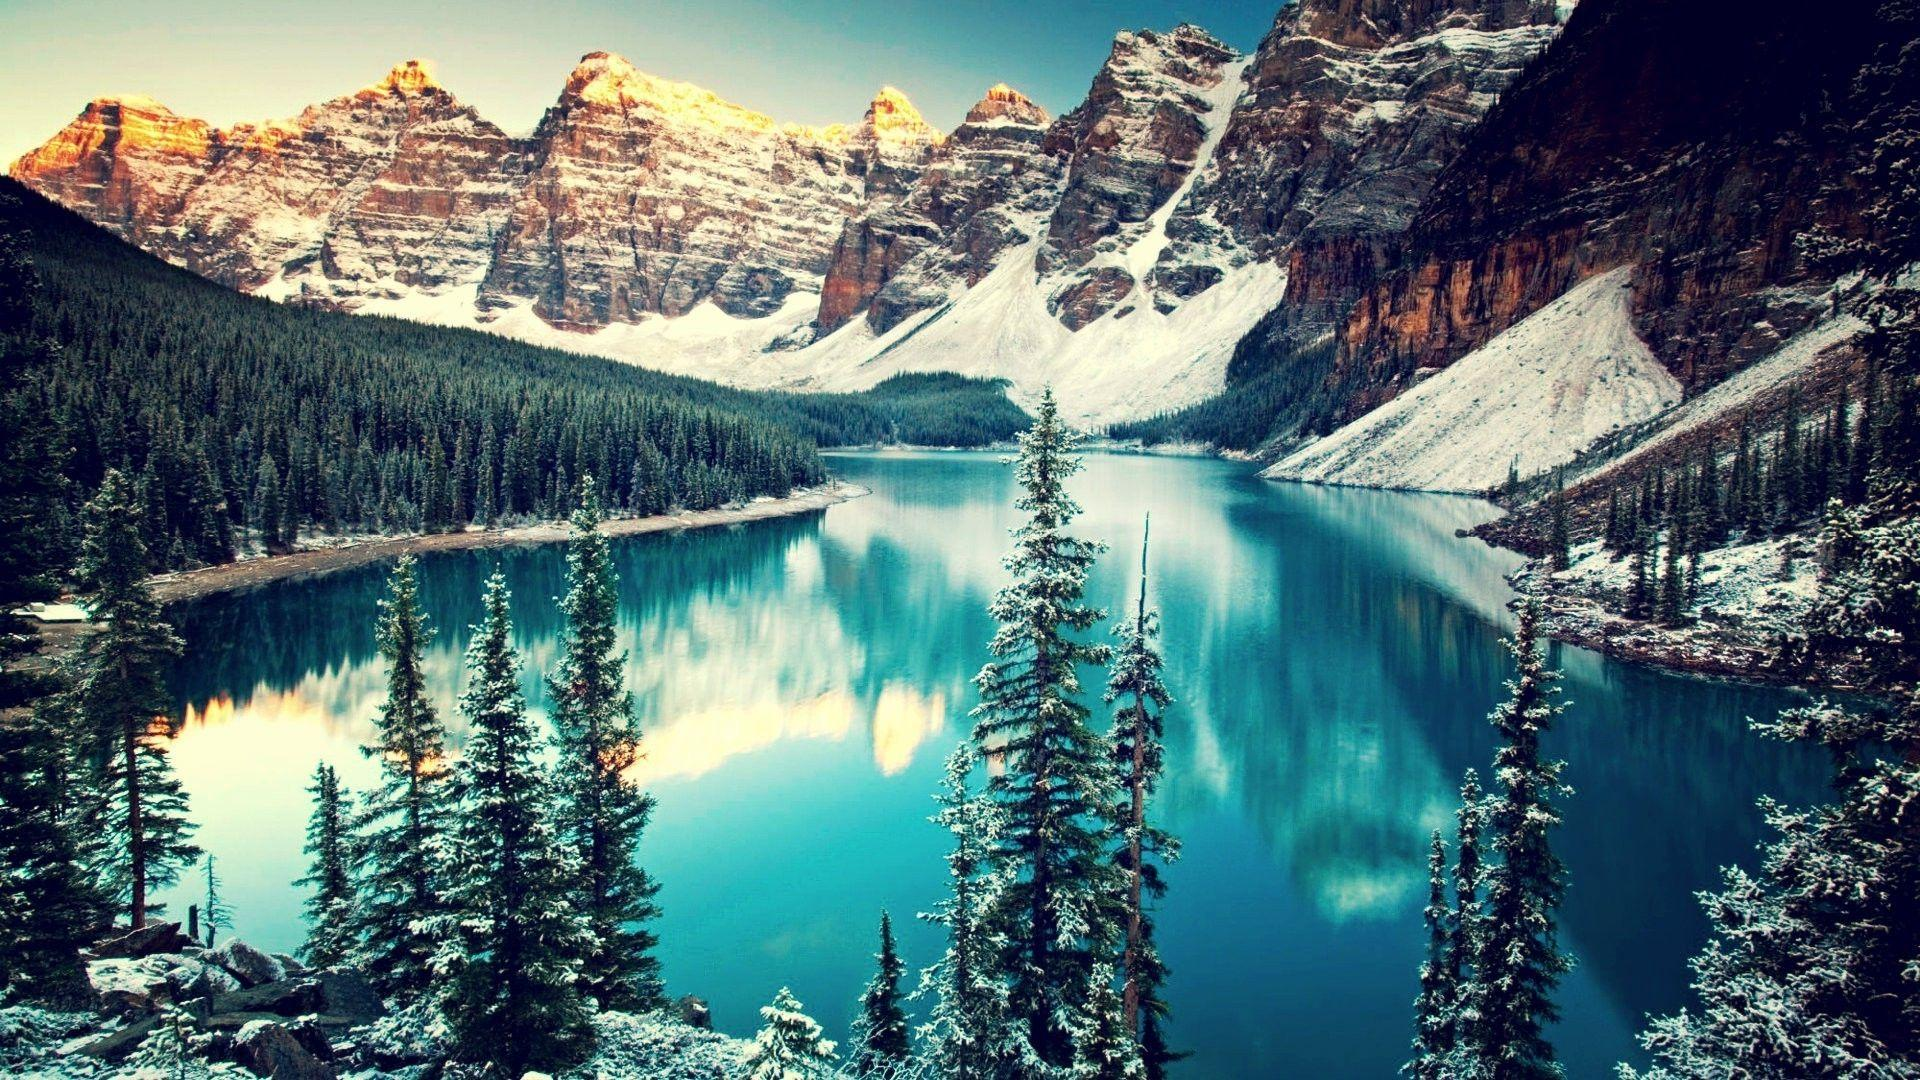 mountain, Trees, Snow, Water, Moraine Lake, Canada, Lake, Forest